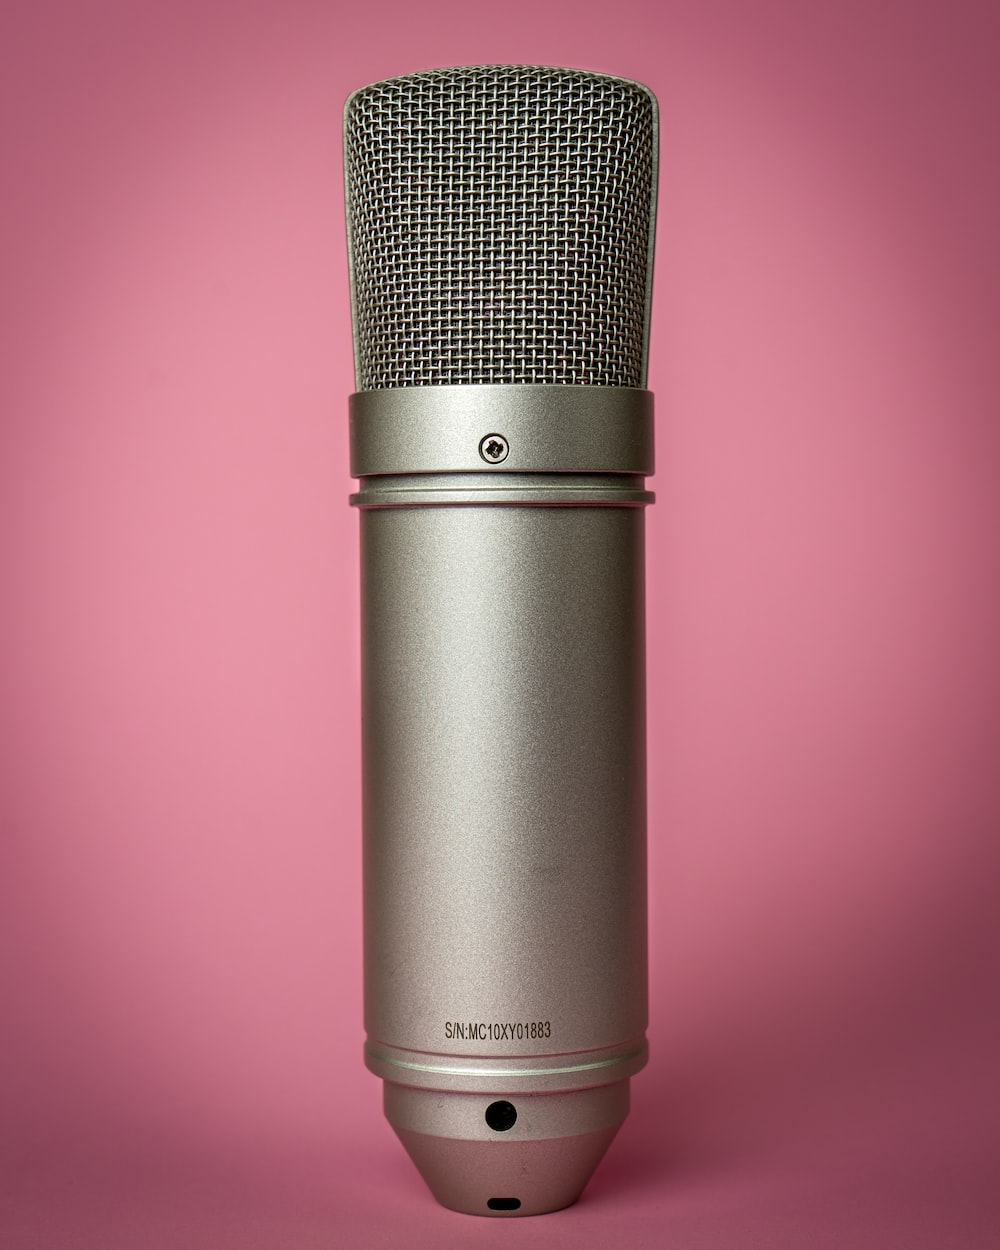 black microphone on pink background